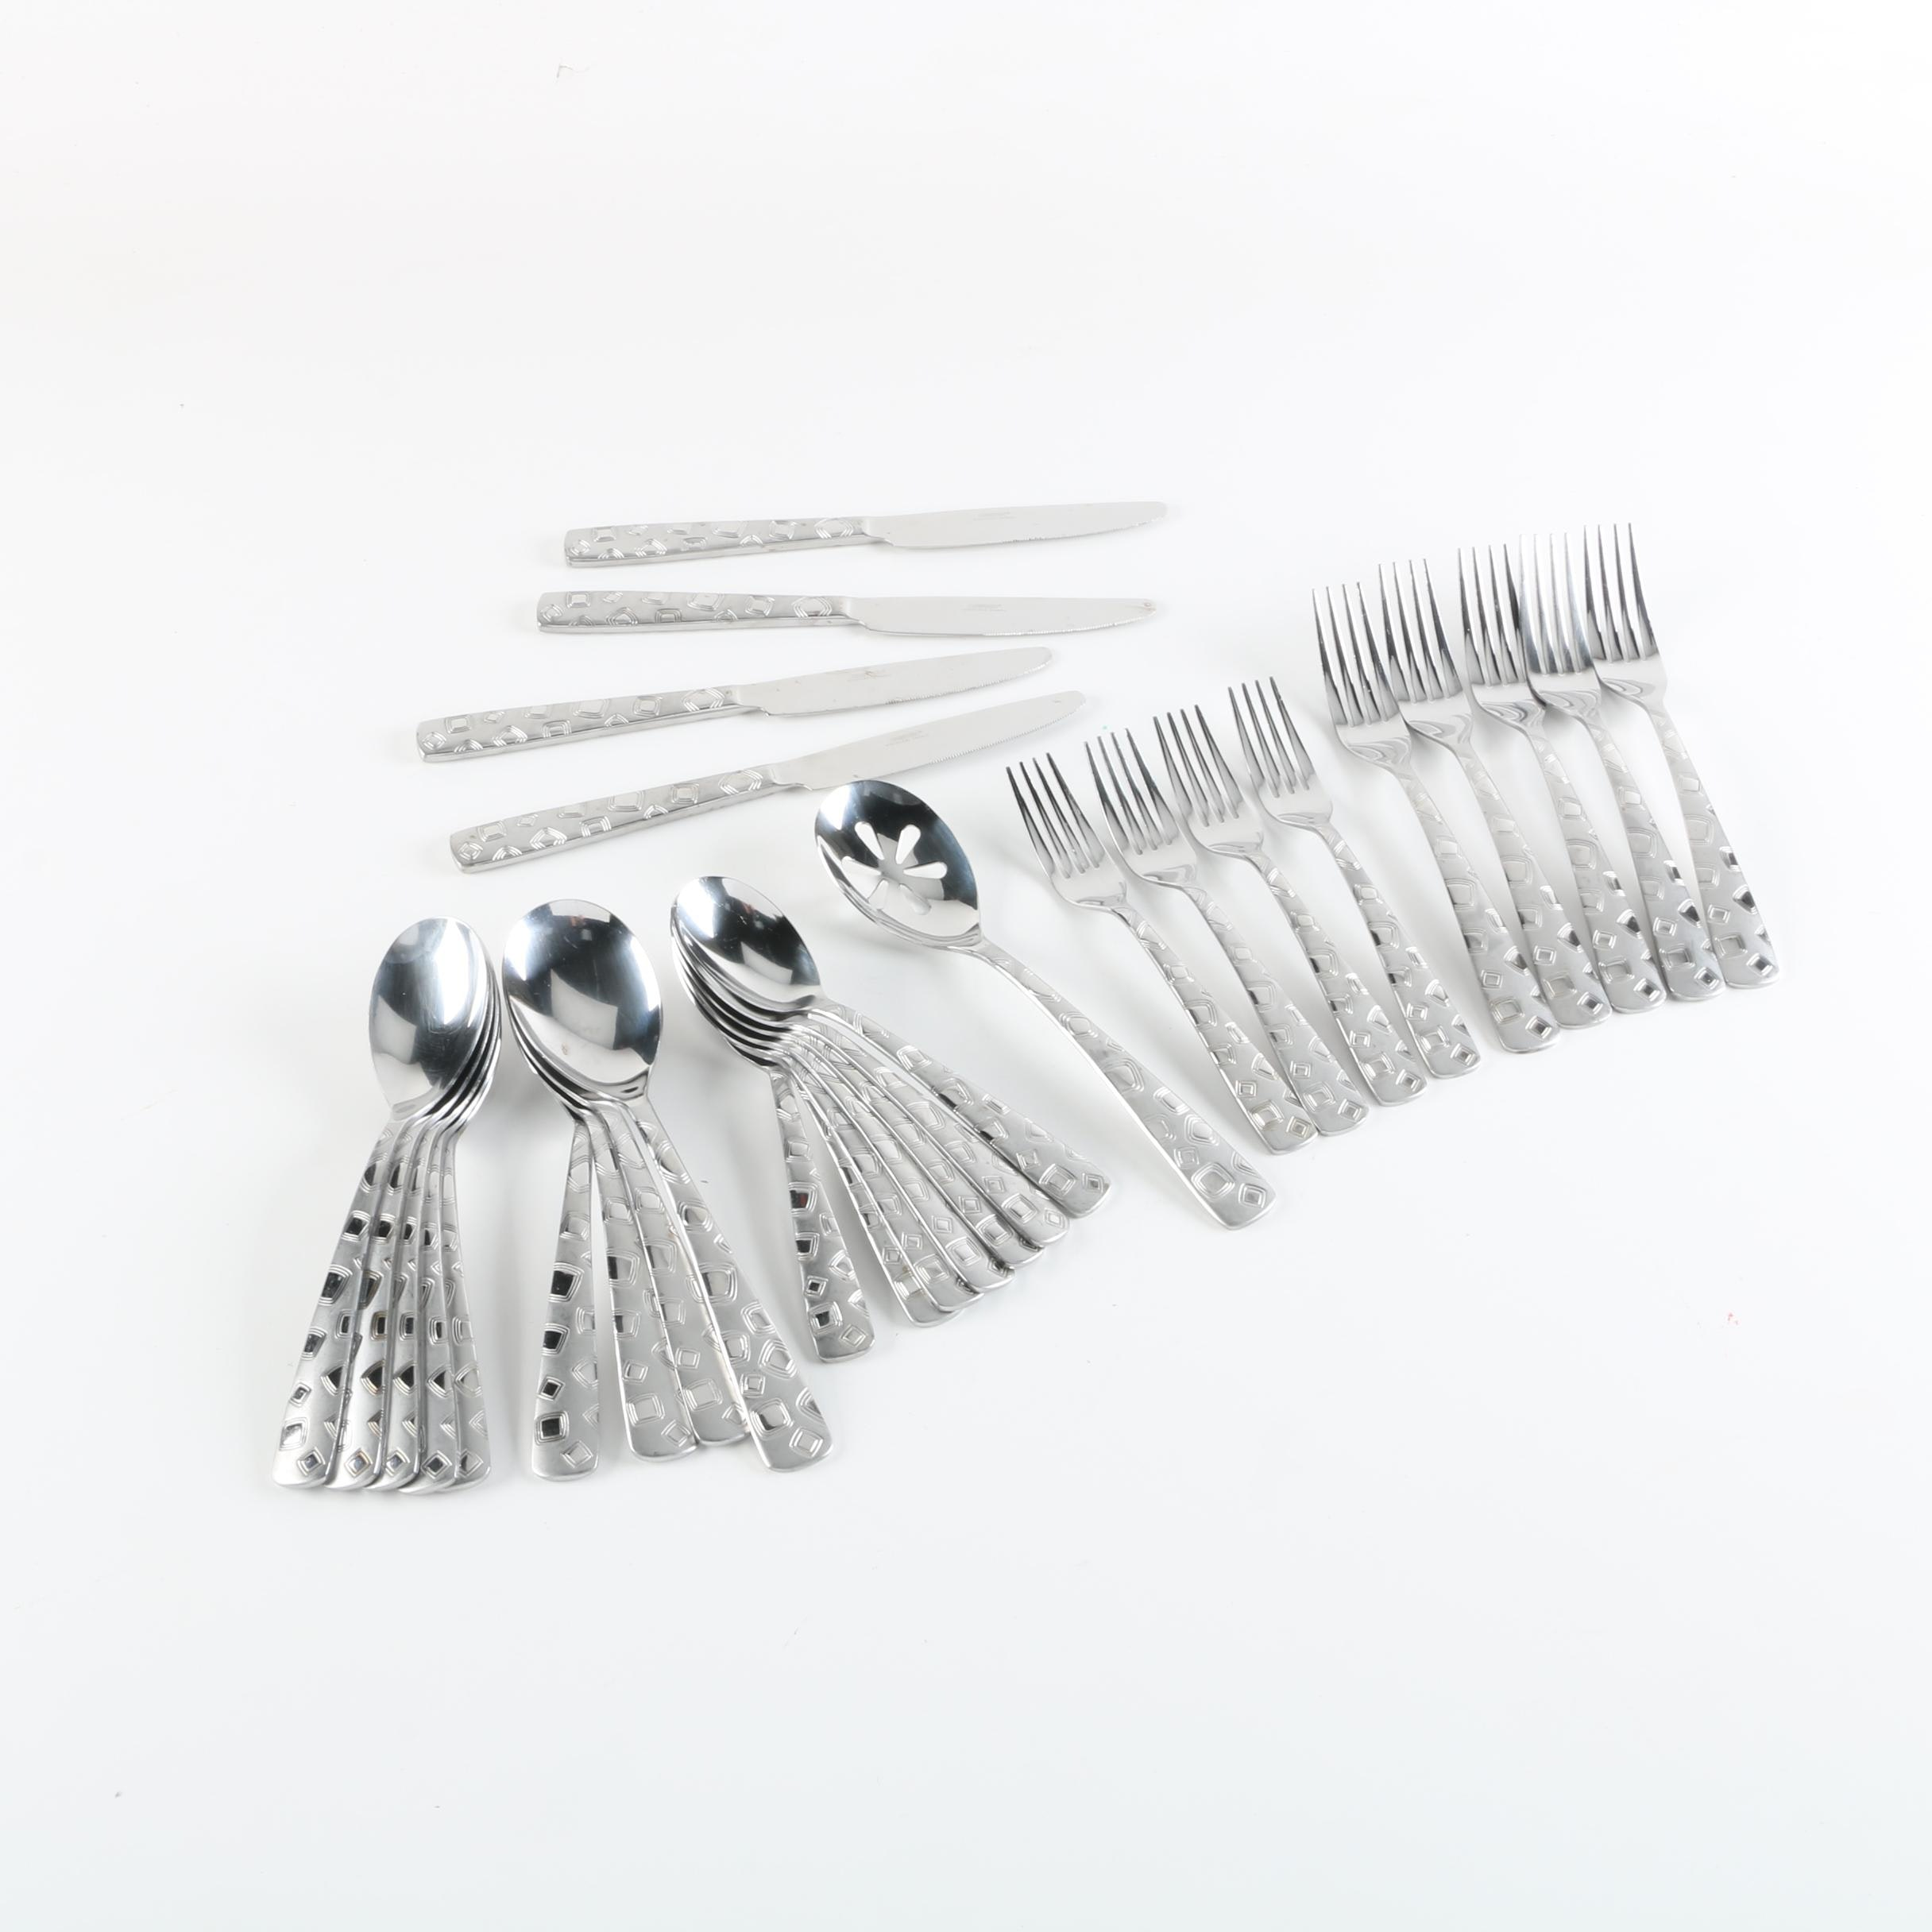 Cambridge Stainless Steal Flatware Set